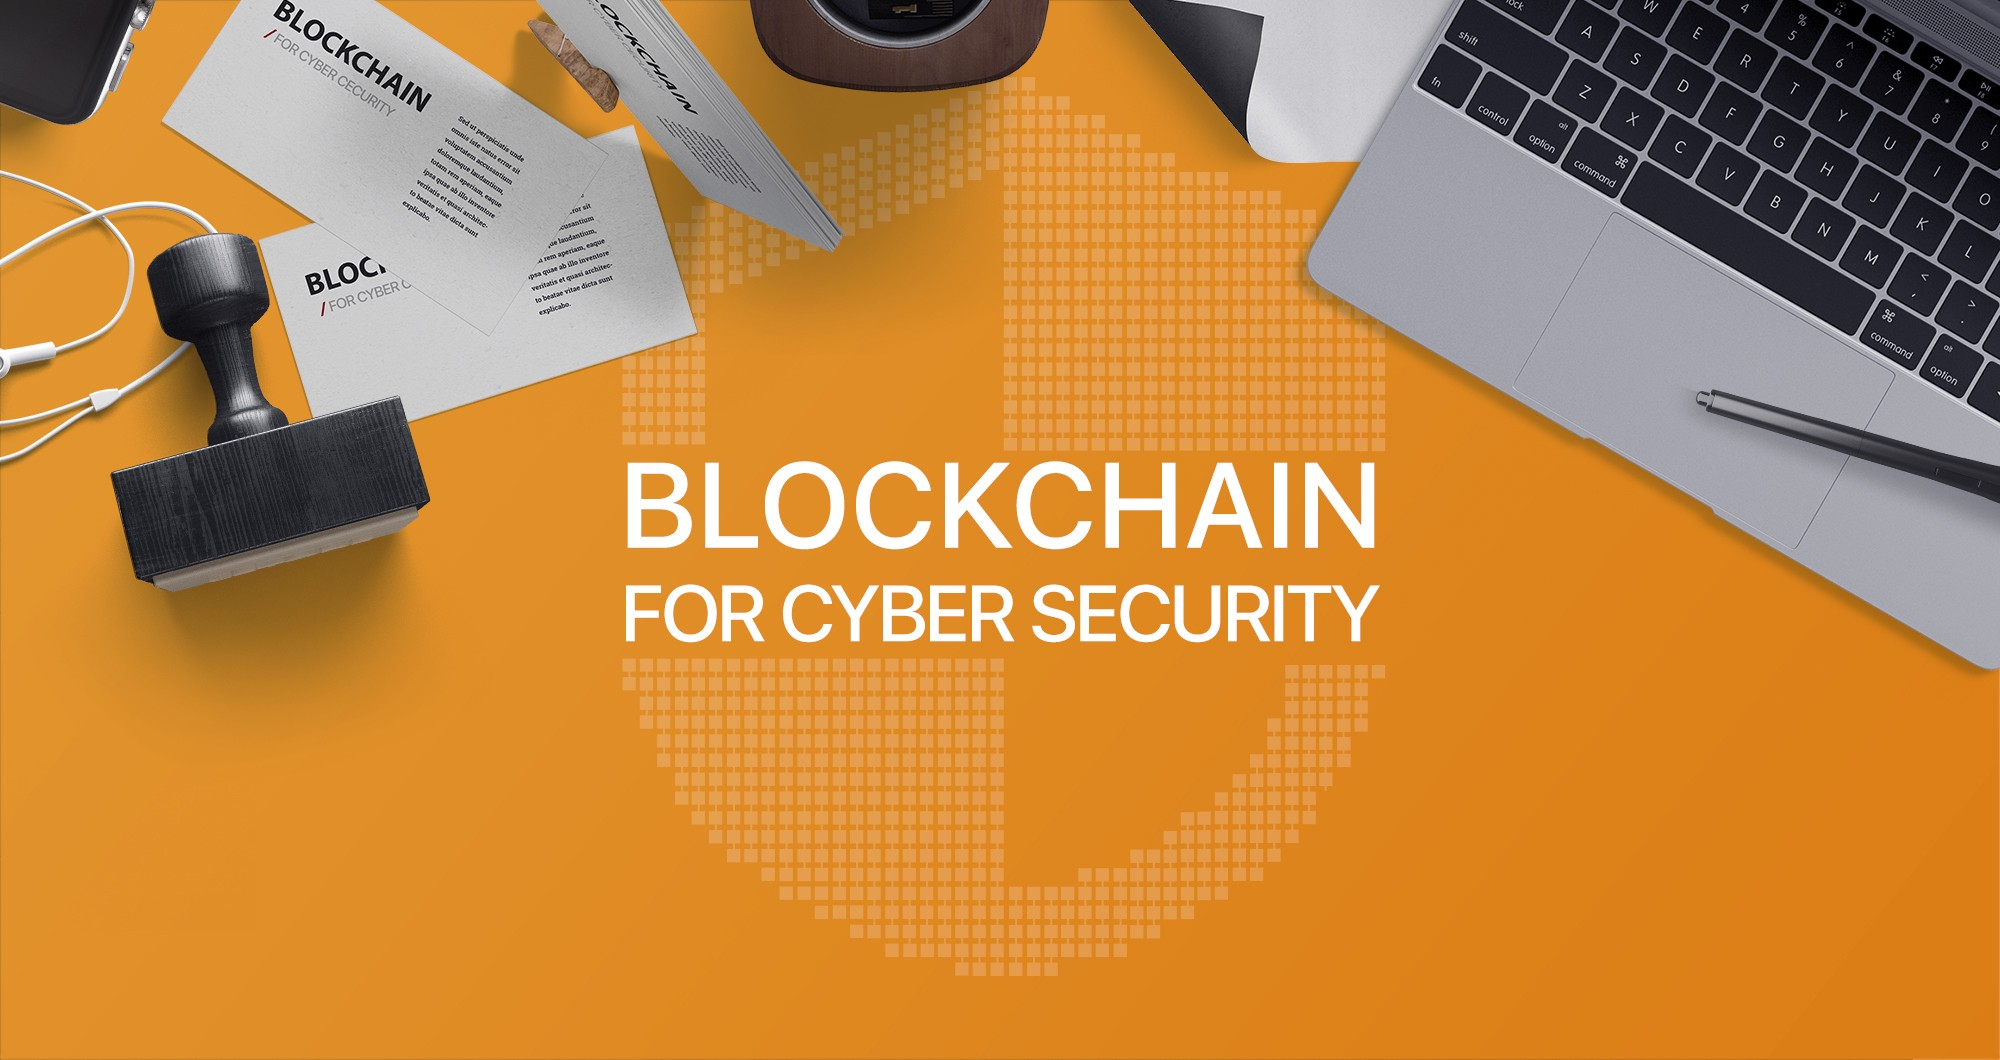 /using-blockchain-technology-to-boost-cyber-security-19b6ef4e6898 feature image